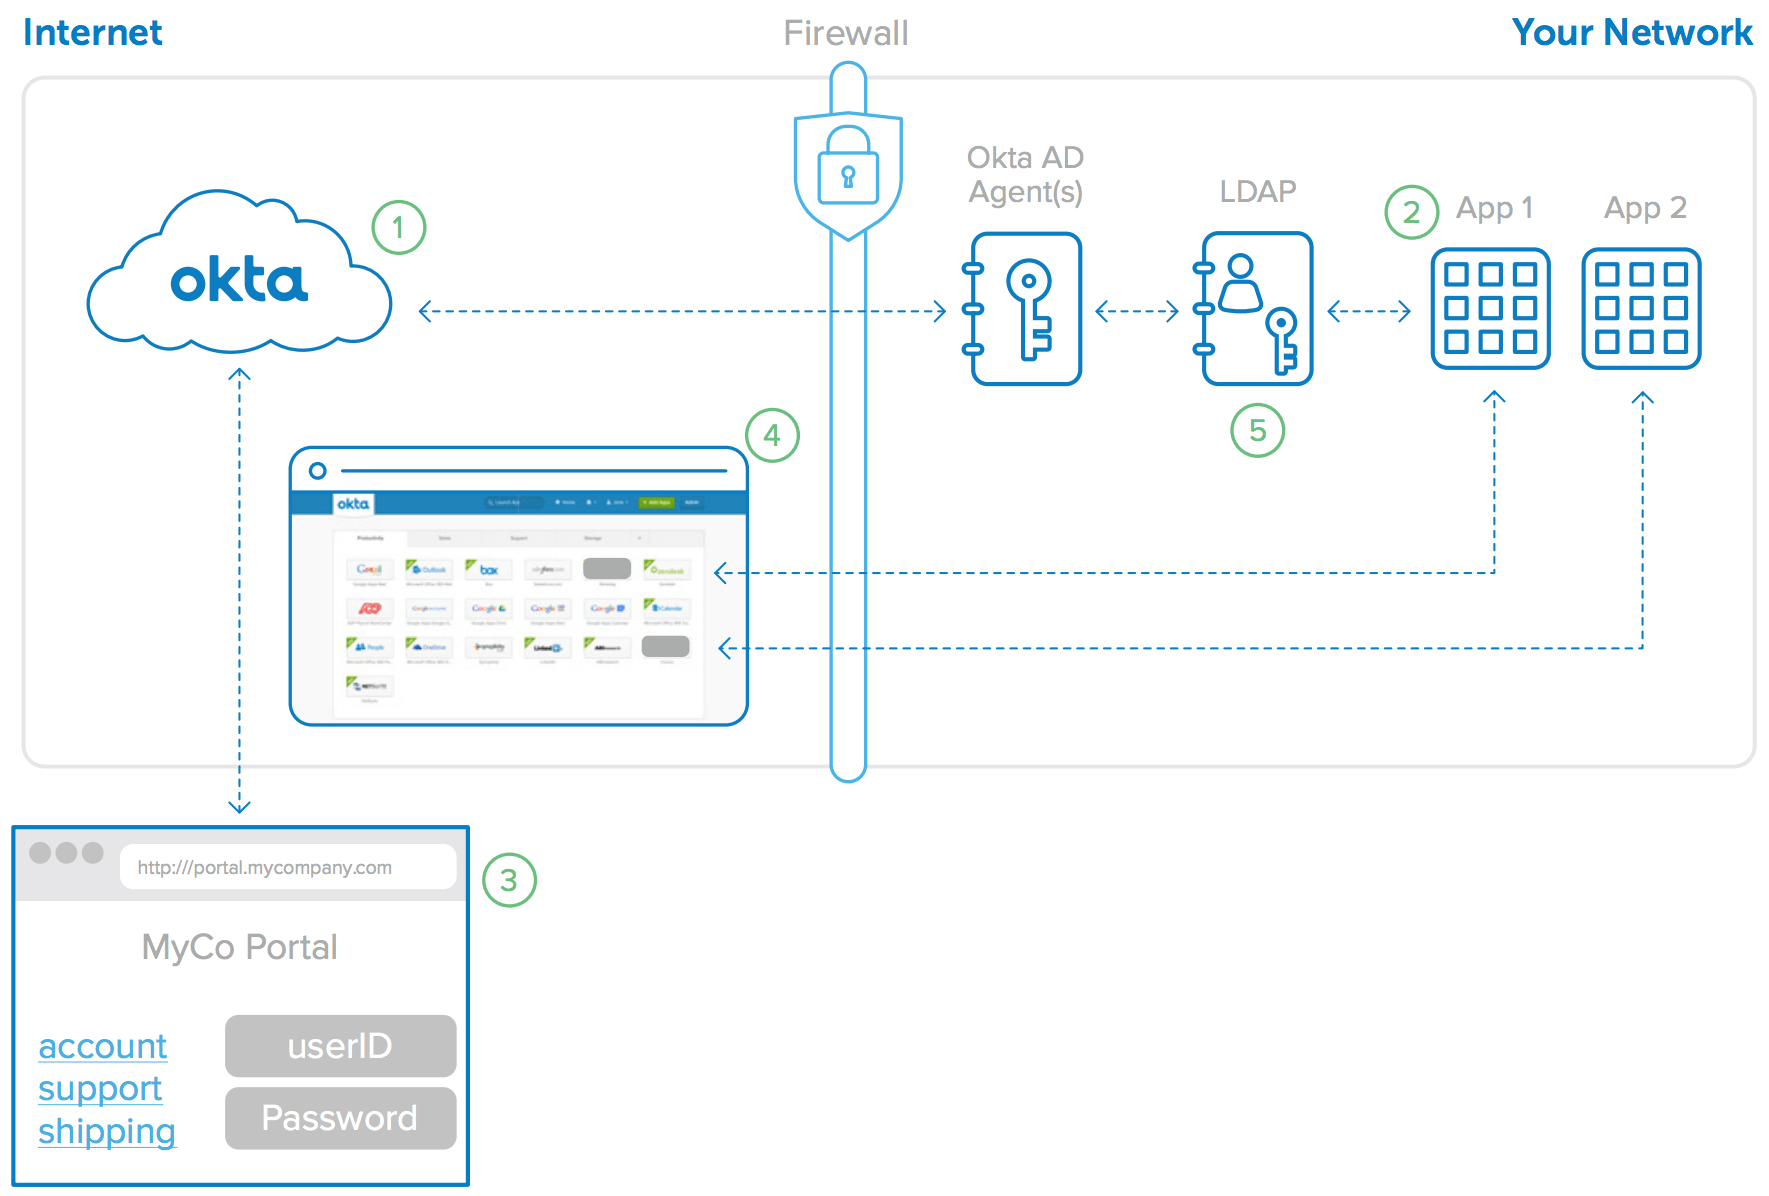 Okta Directory Integration - An Architecture Overview | Okta